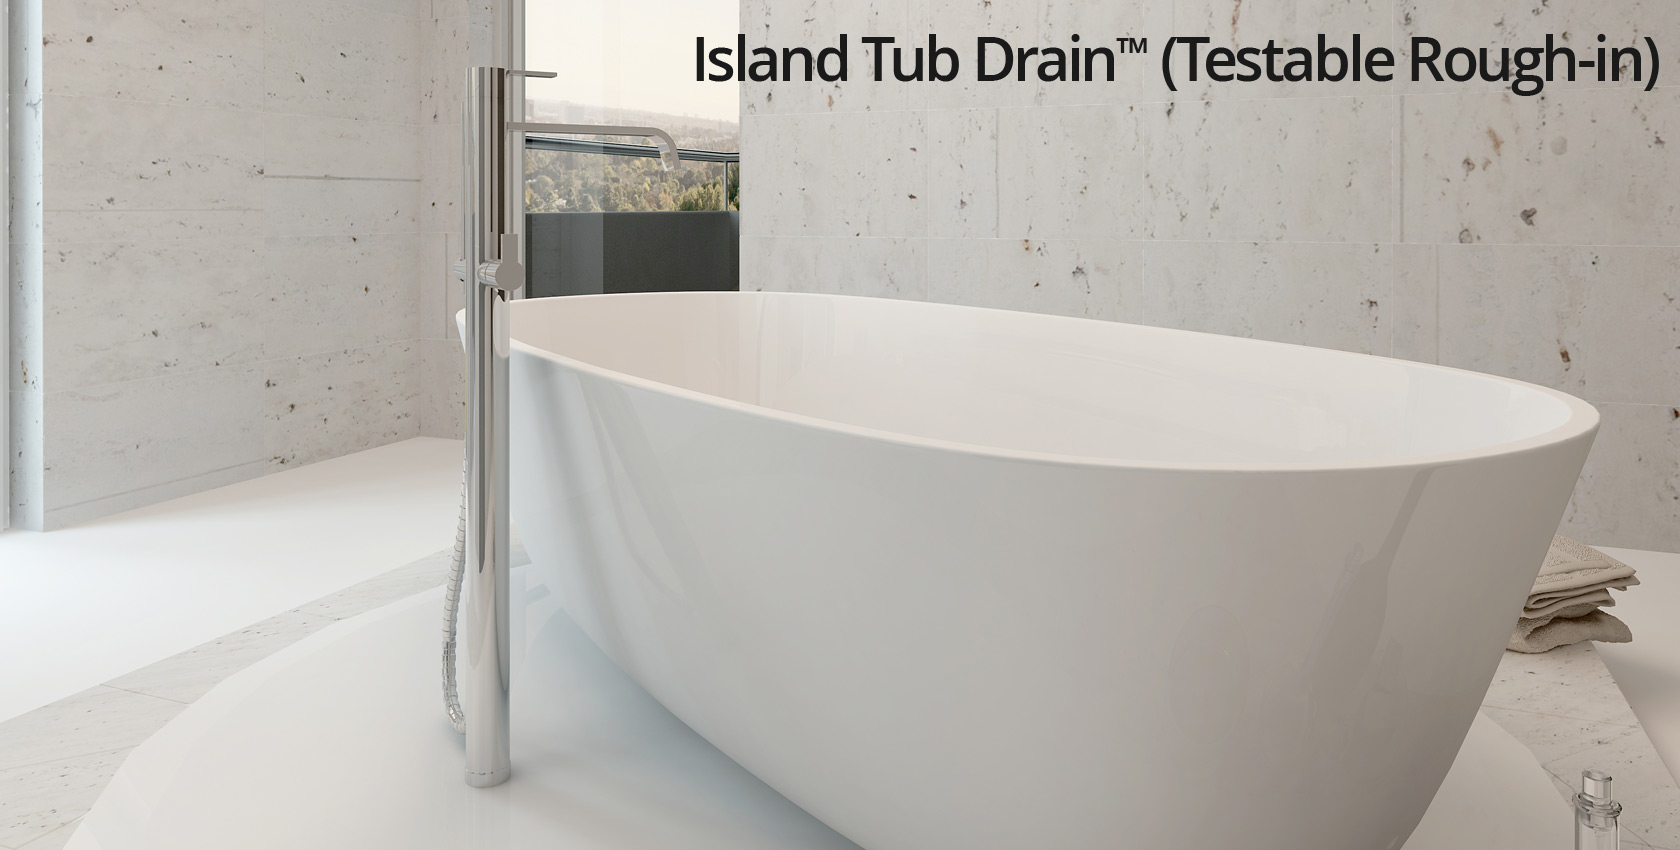 Island Tub Drain Testable Rough In Os B Your Job Just